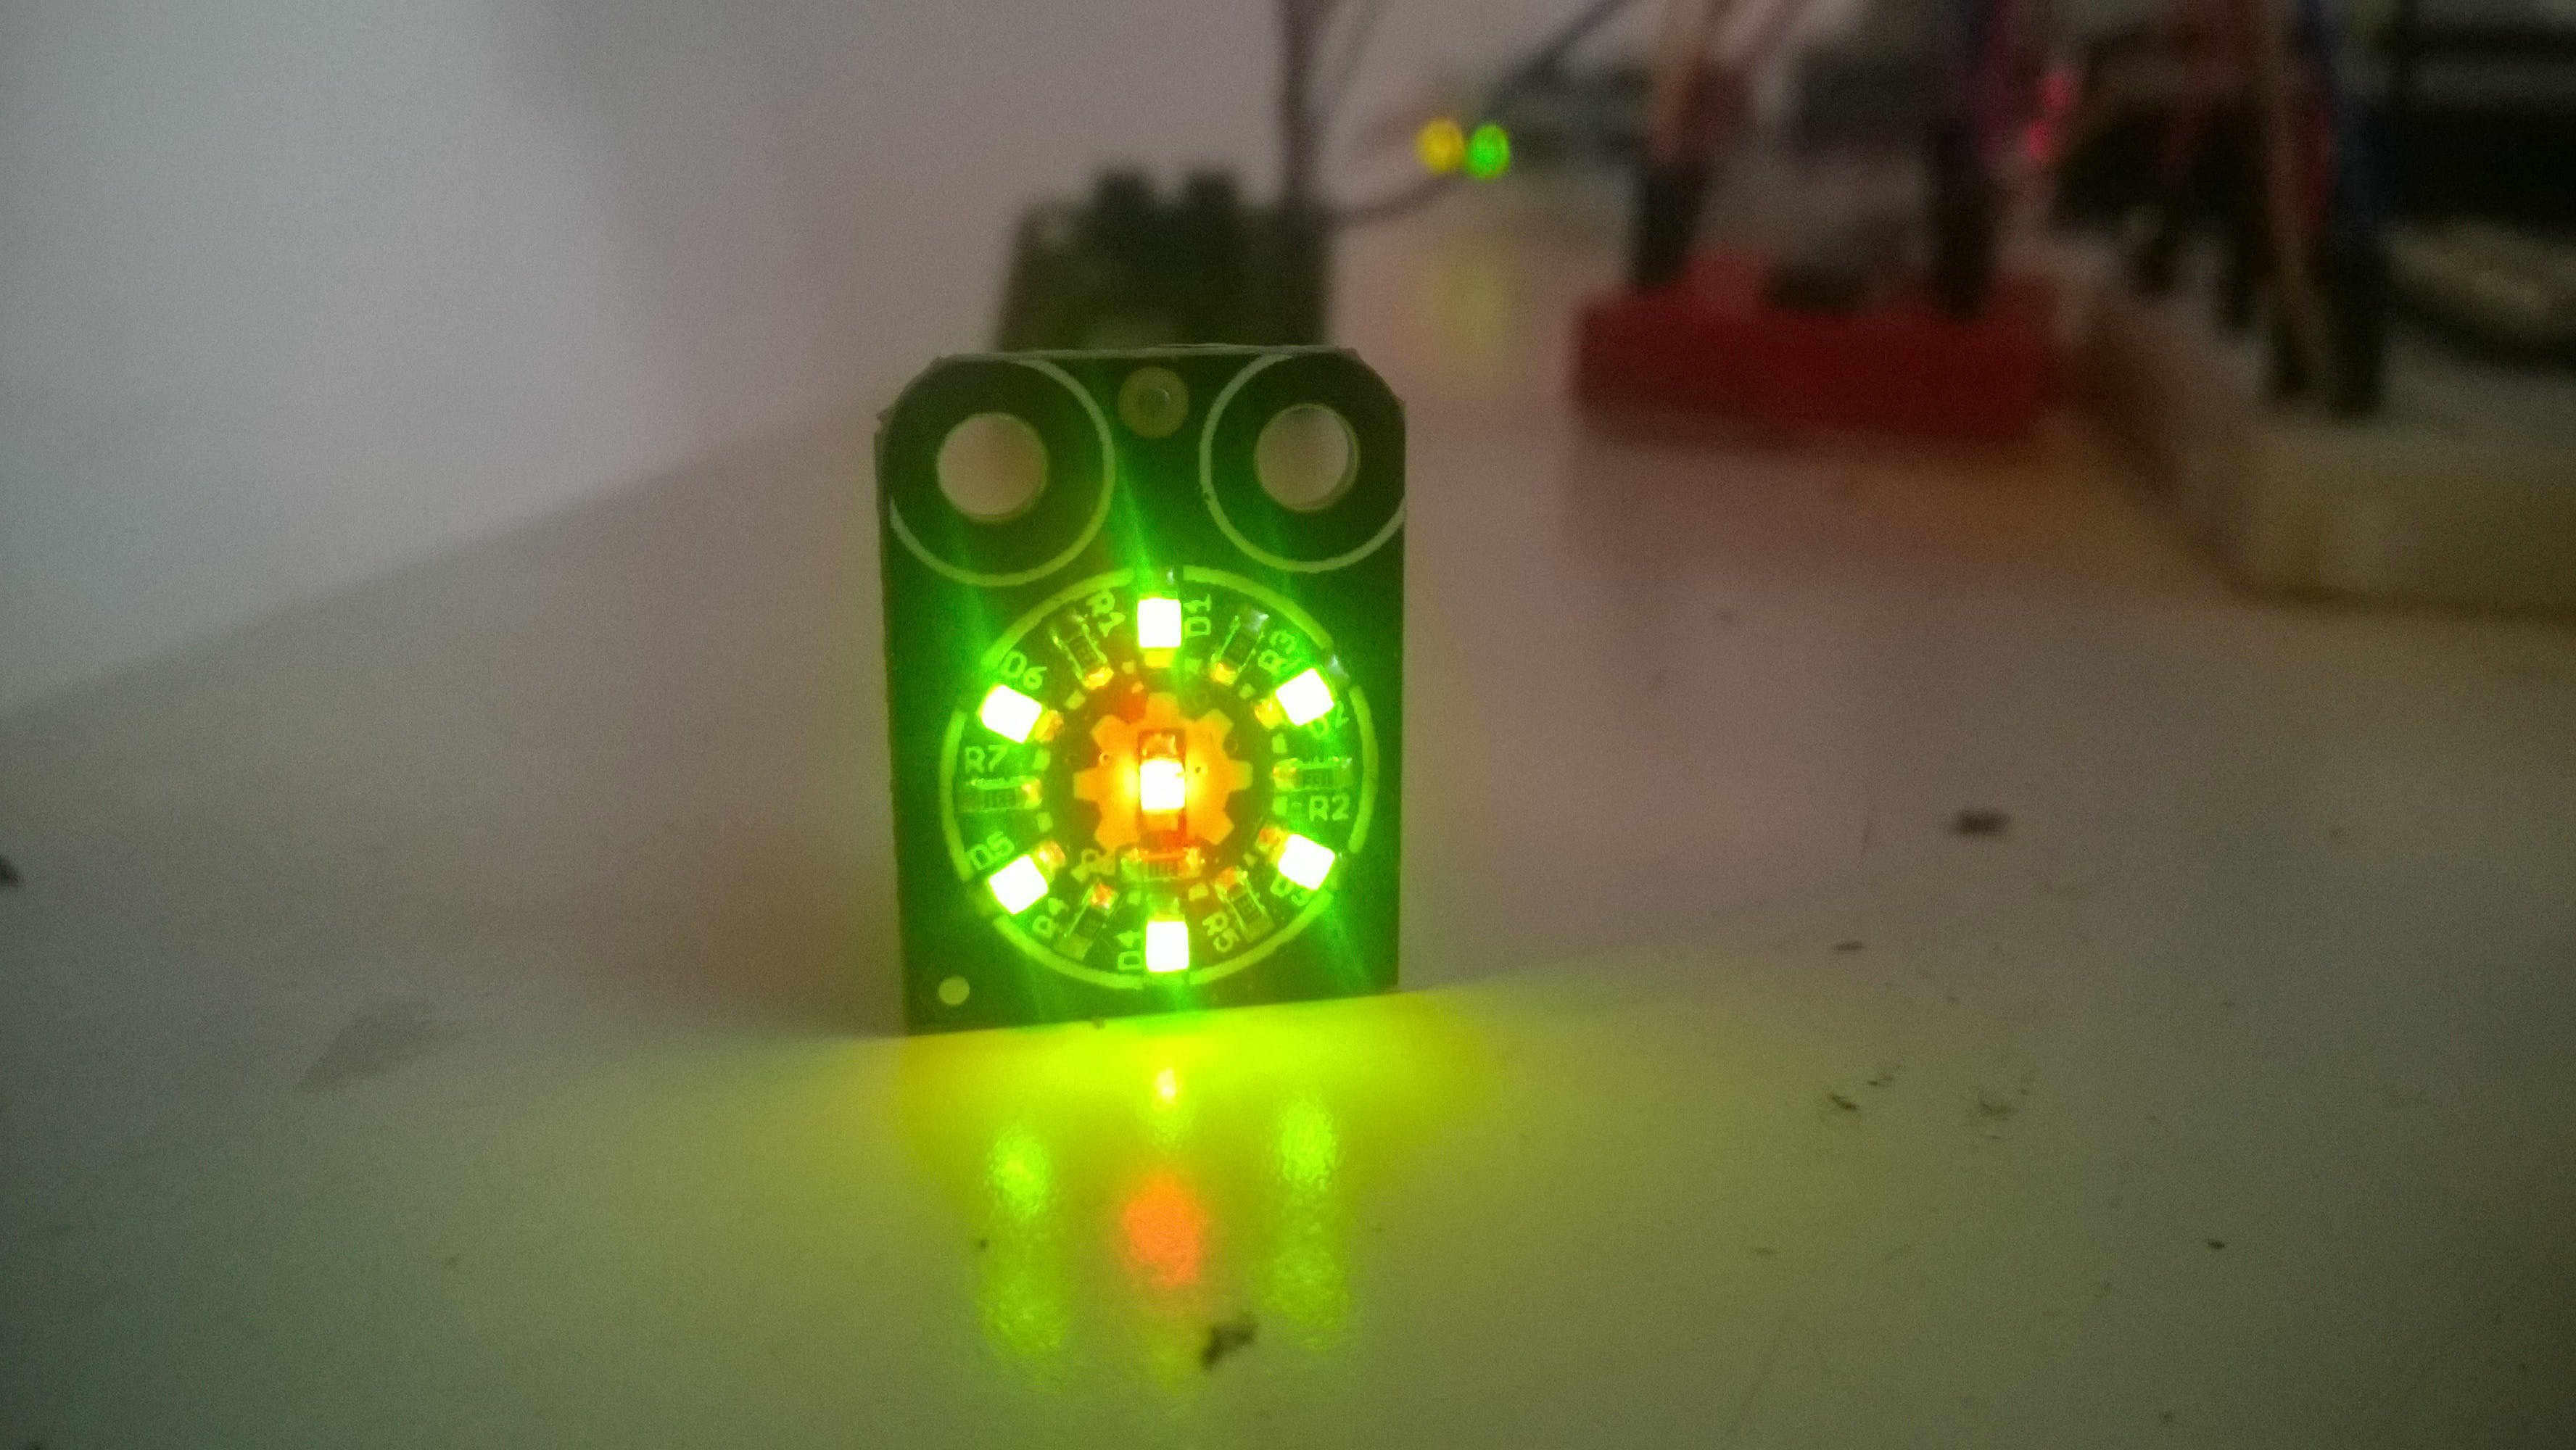 Gadgeteer LED7R on Raspberry PI 2 with Windows 10 IoT Core